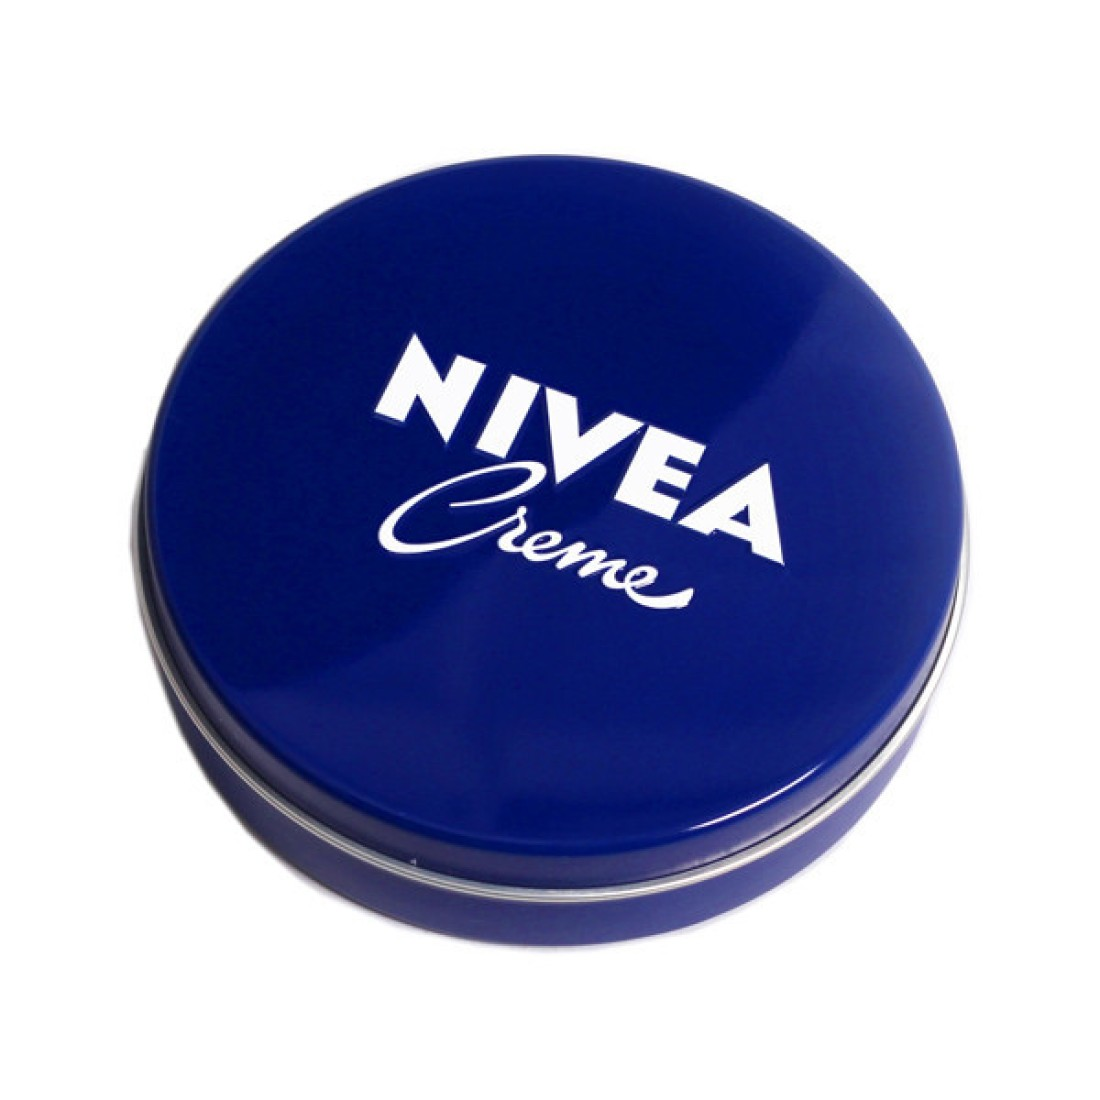 Nivea The Original Moisturizer Creme ( Made In Germany)